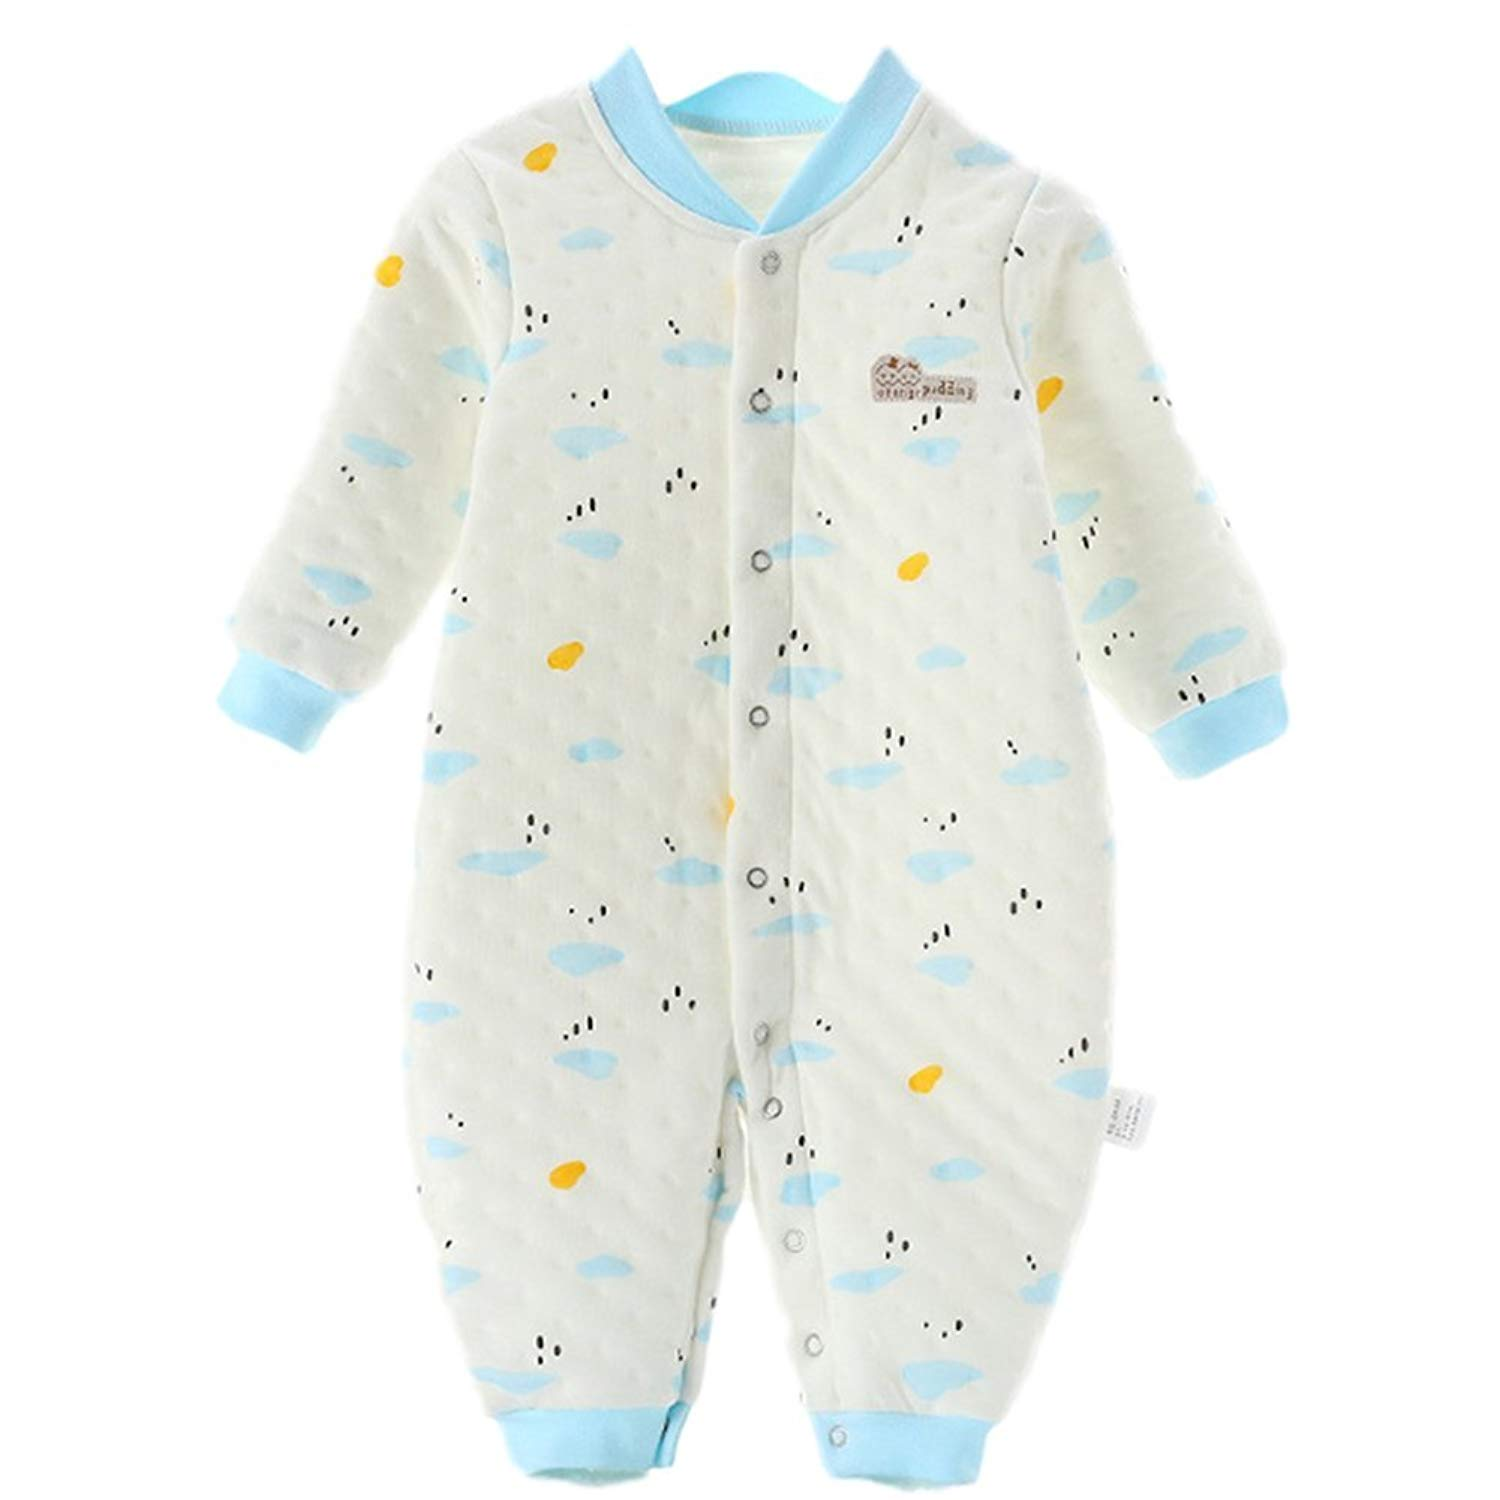 653f18fec Get Quotations · Chickwin Baby Suits, Pure Cotton Infants and Young hildren  Cotton Pajamas Winter Newborn Clothes